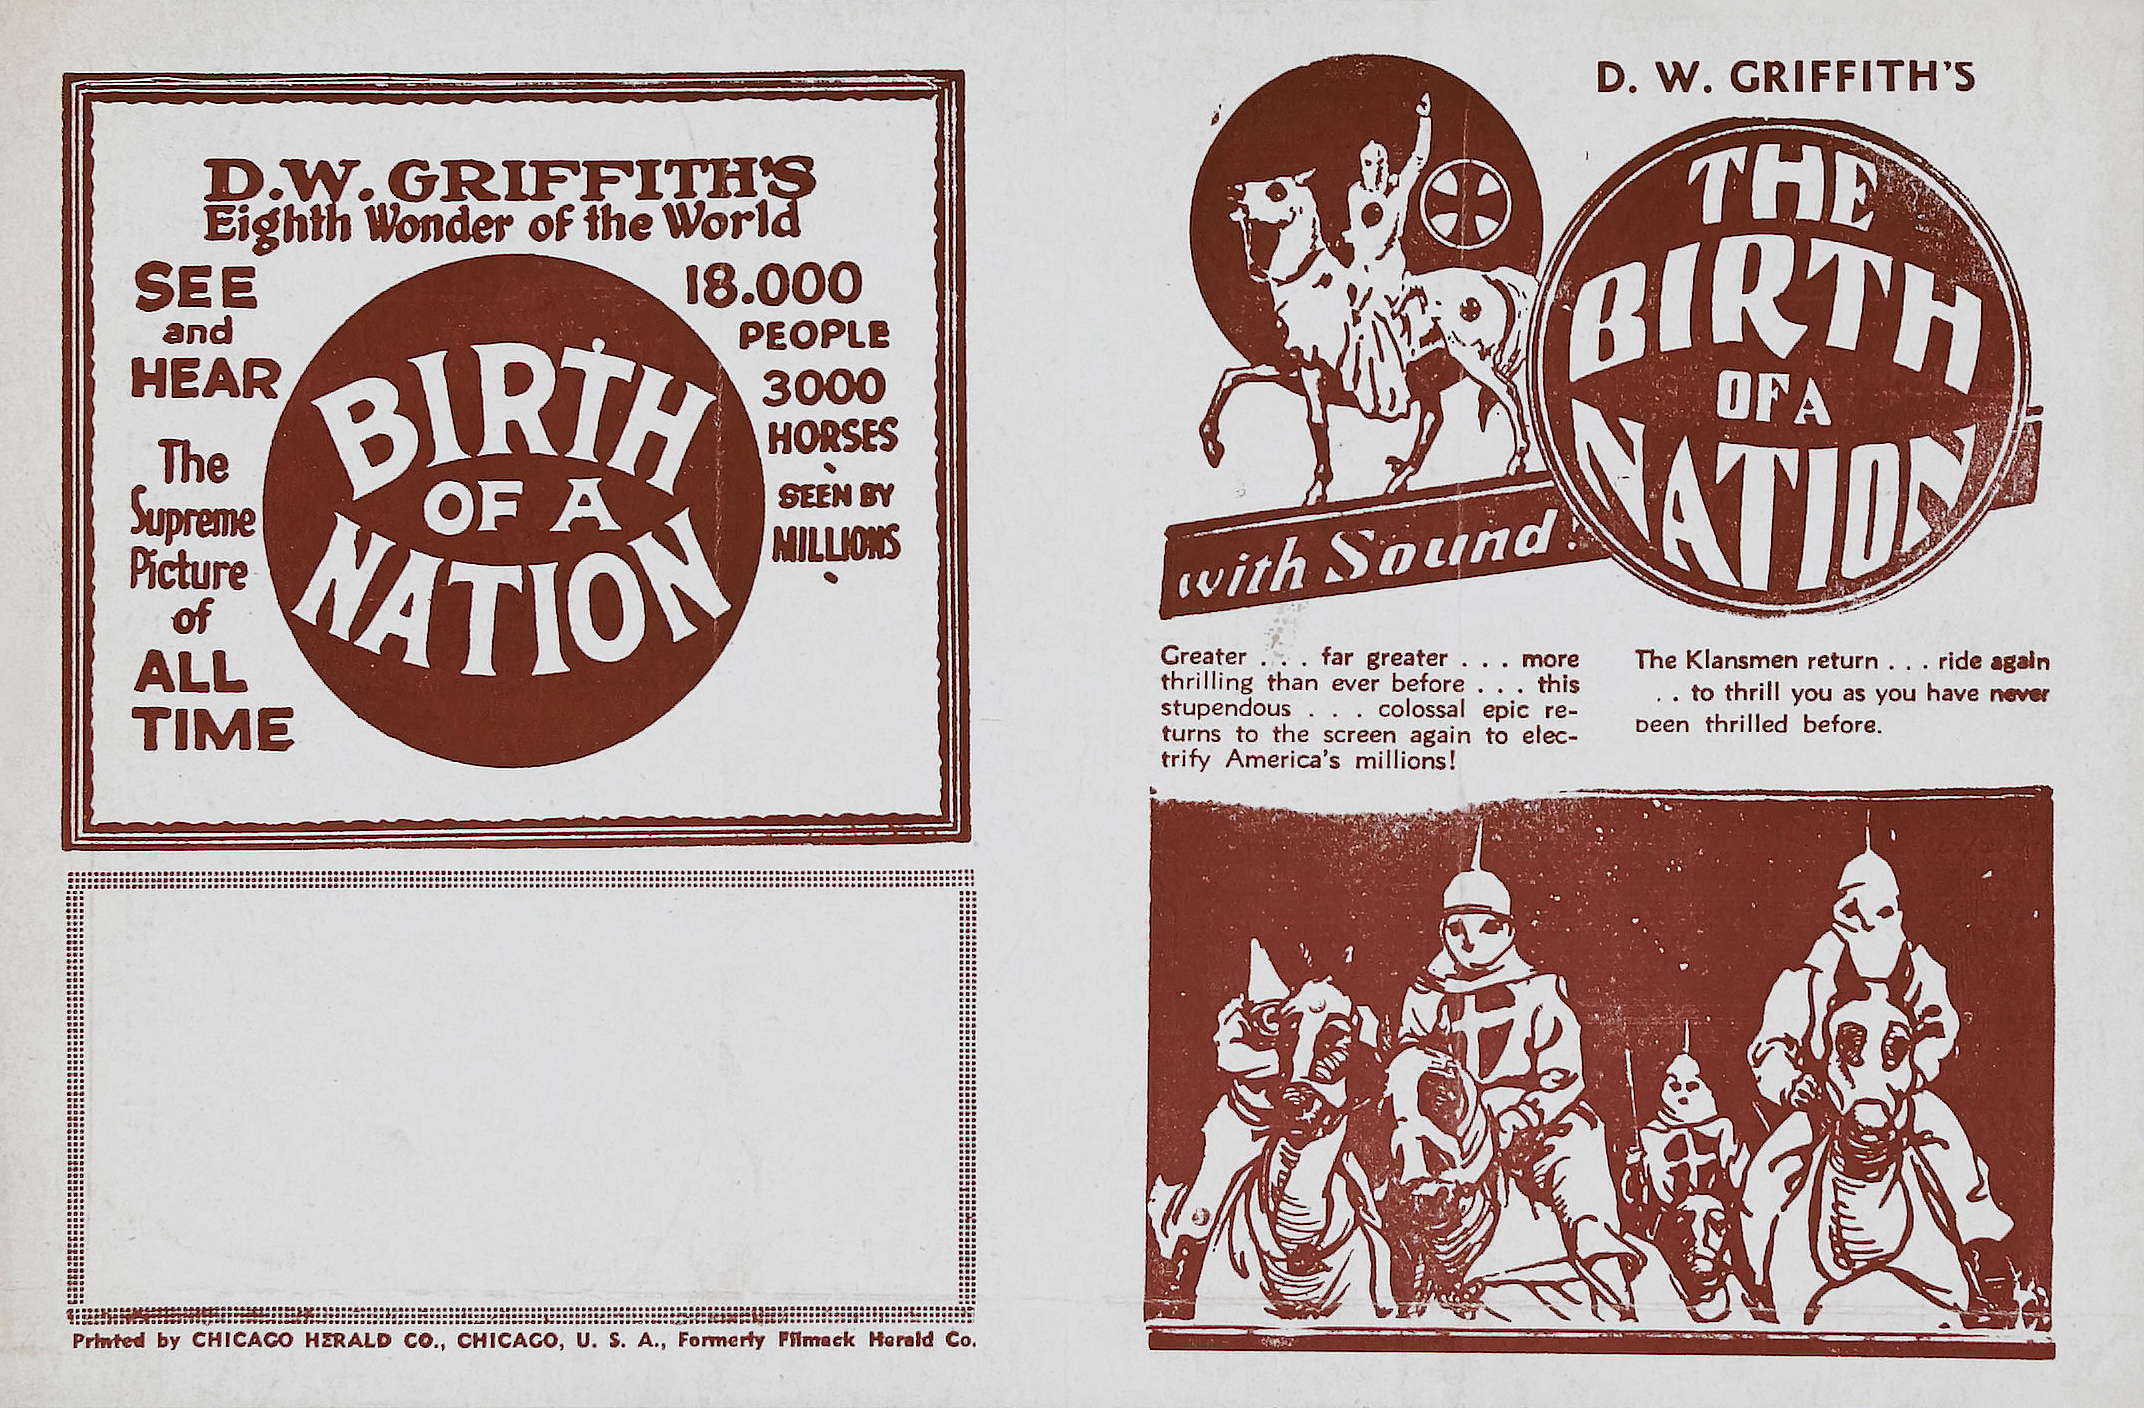 a movie analysis of birth of a nation by d w griffith